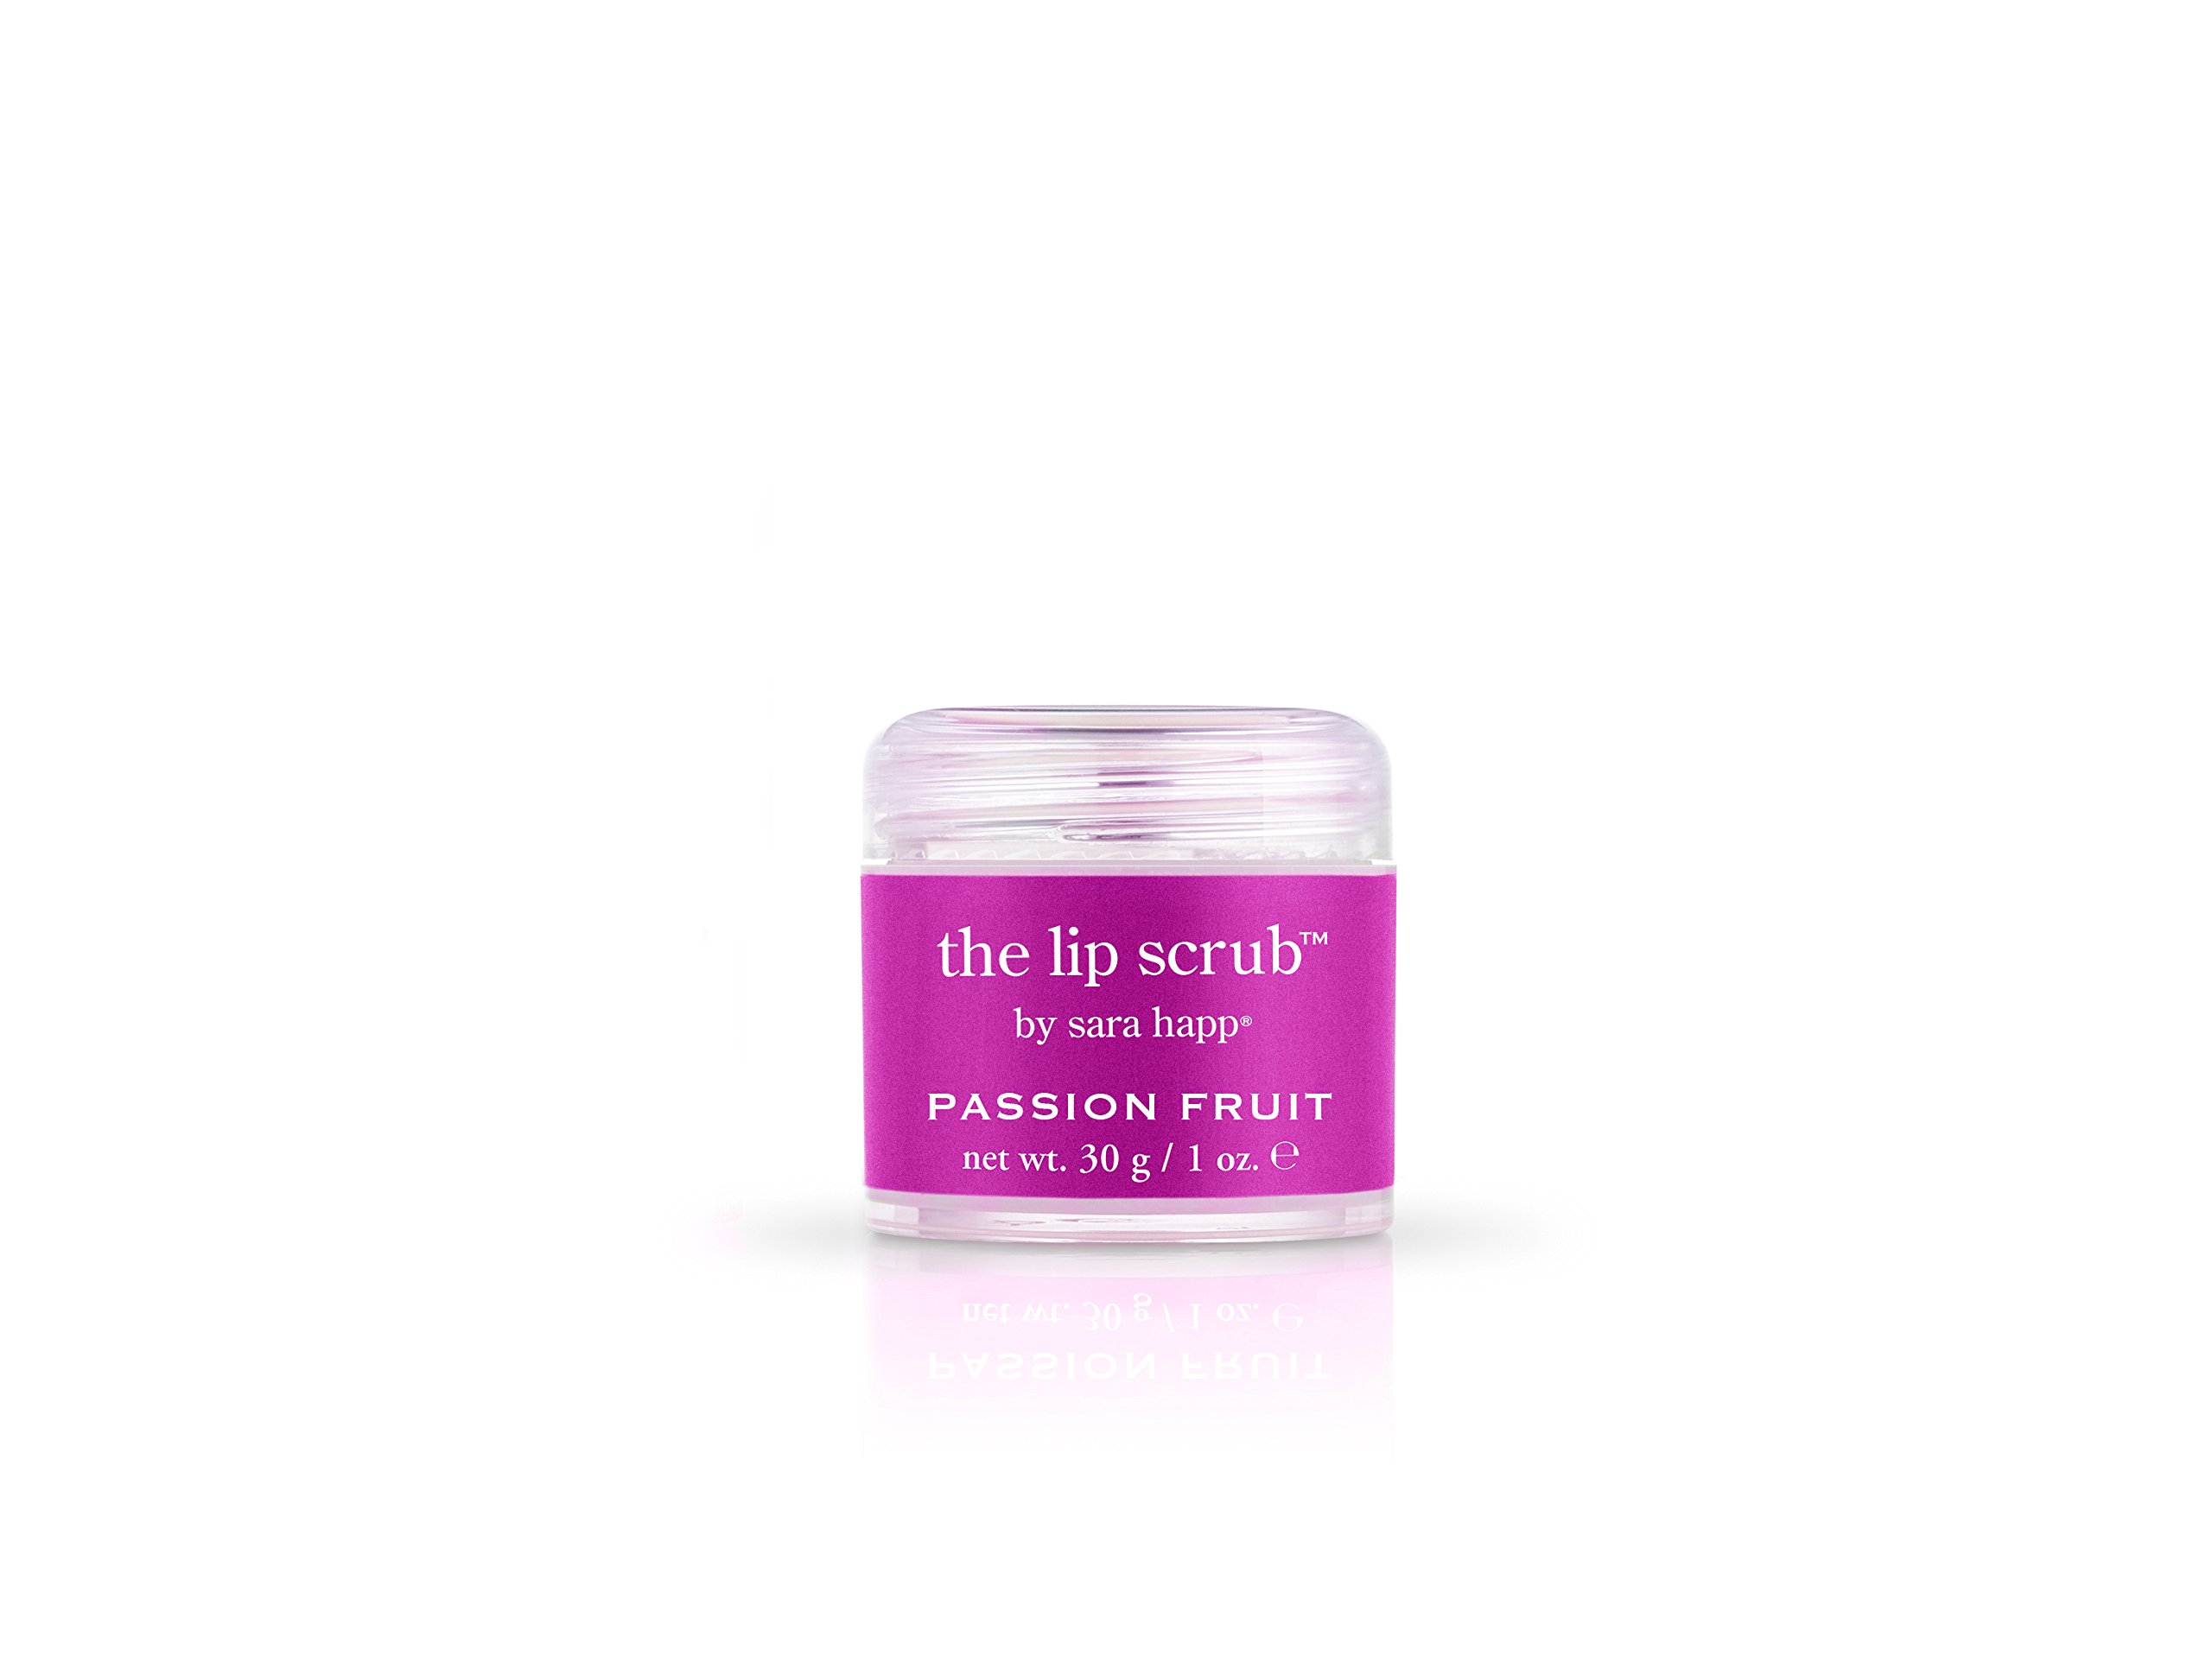 sara happ The Lip Scrub Passion Fruit, 1 Oz